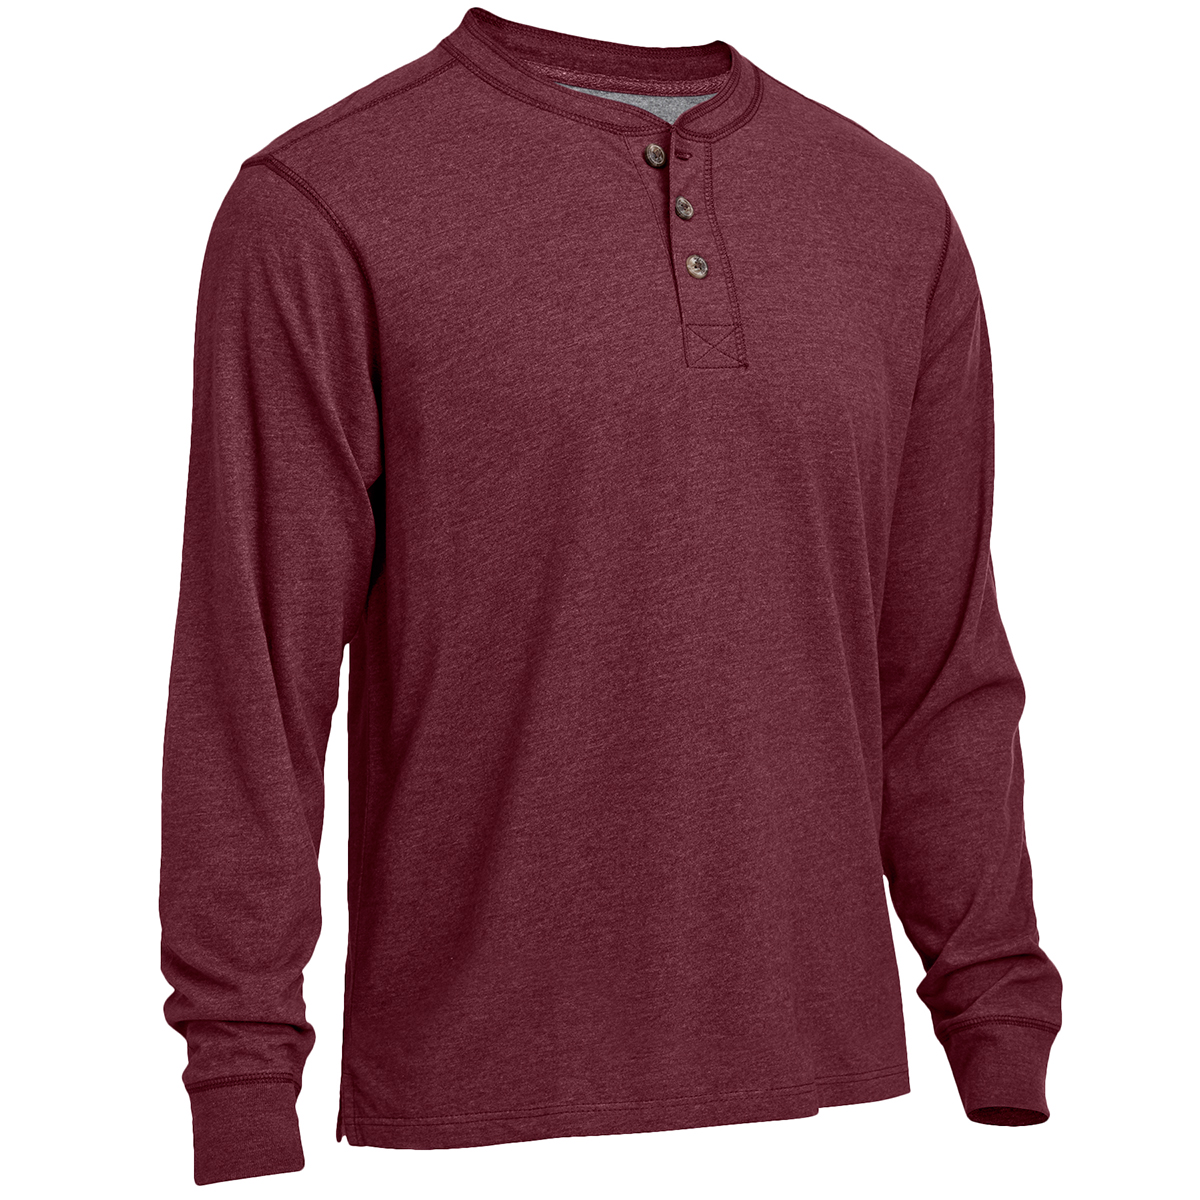 Rugged Trails Men's Sueded Heather Henley Shirt - Red, M